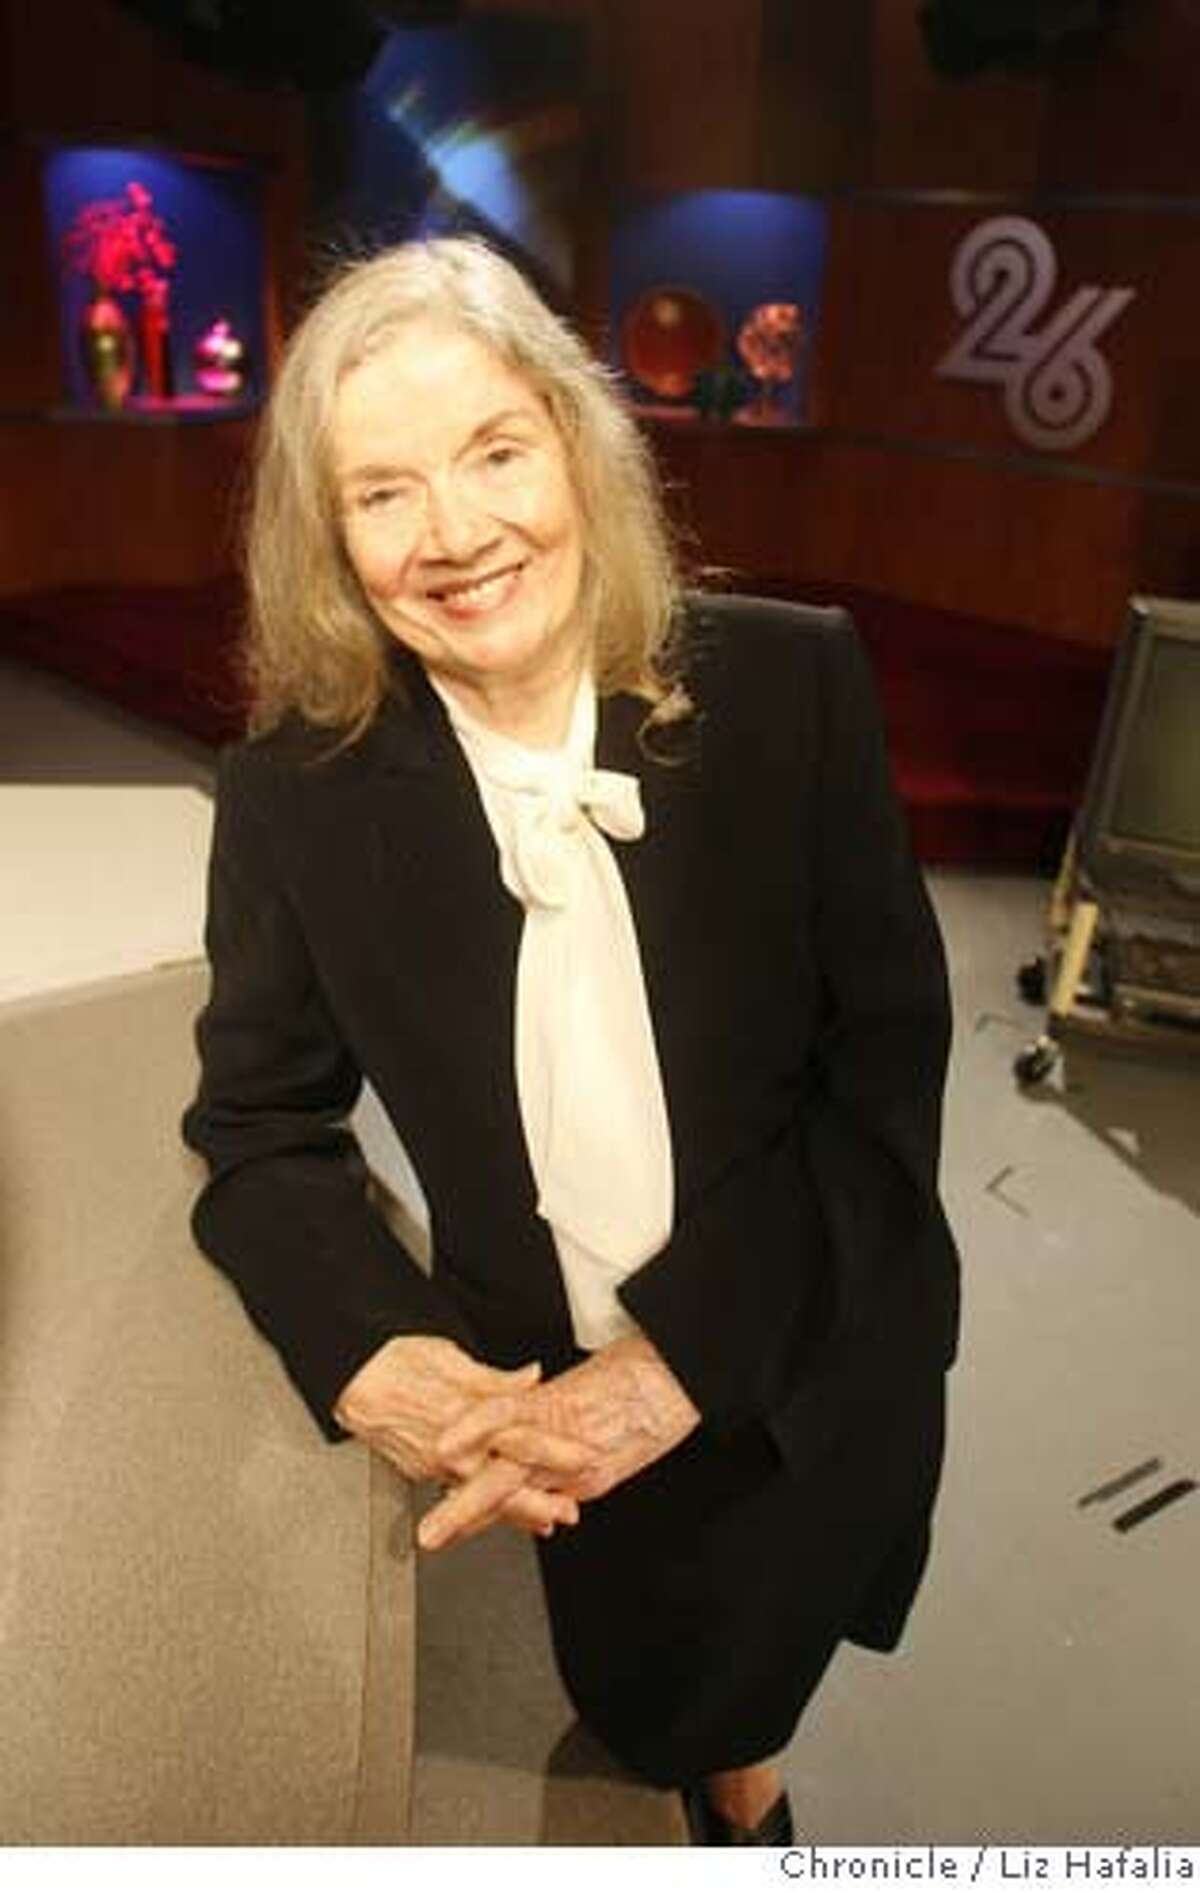 A profile about Lillian Lincoln Howell, the 85-year-old founder of KTSF, an independent, television station providing news, information and entertainment programming in 12 different languages and is the only station in the United States broadcasting nightly, live news programming in both Cantonese and Mandarin. Liz Hafalia/The Chronicle Ran on: 09-02-2006 Lillian Lincoln Howell, 85, started KTSF in the 1970s to serve the Asian American community, then small.